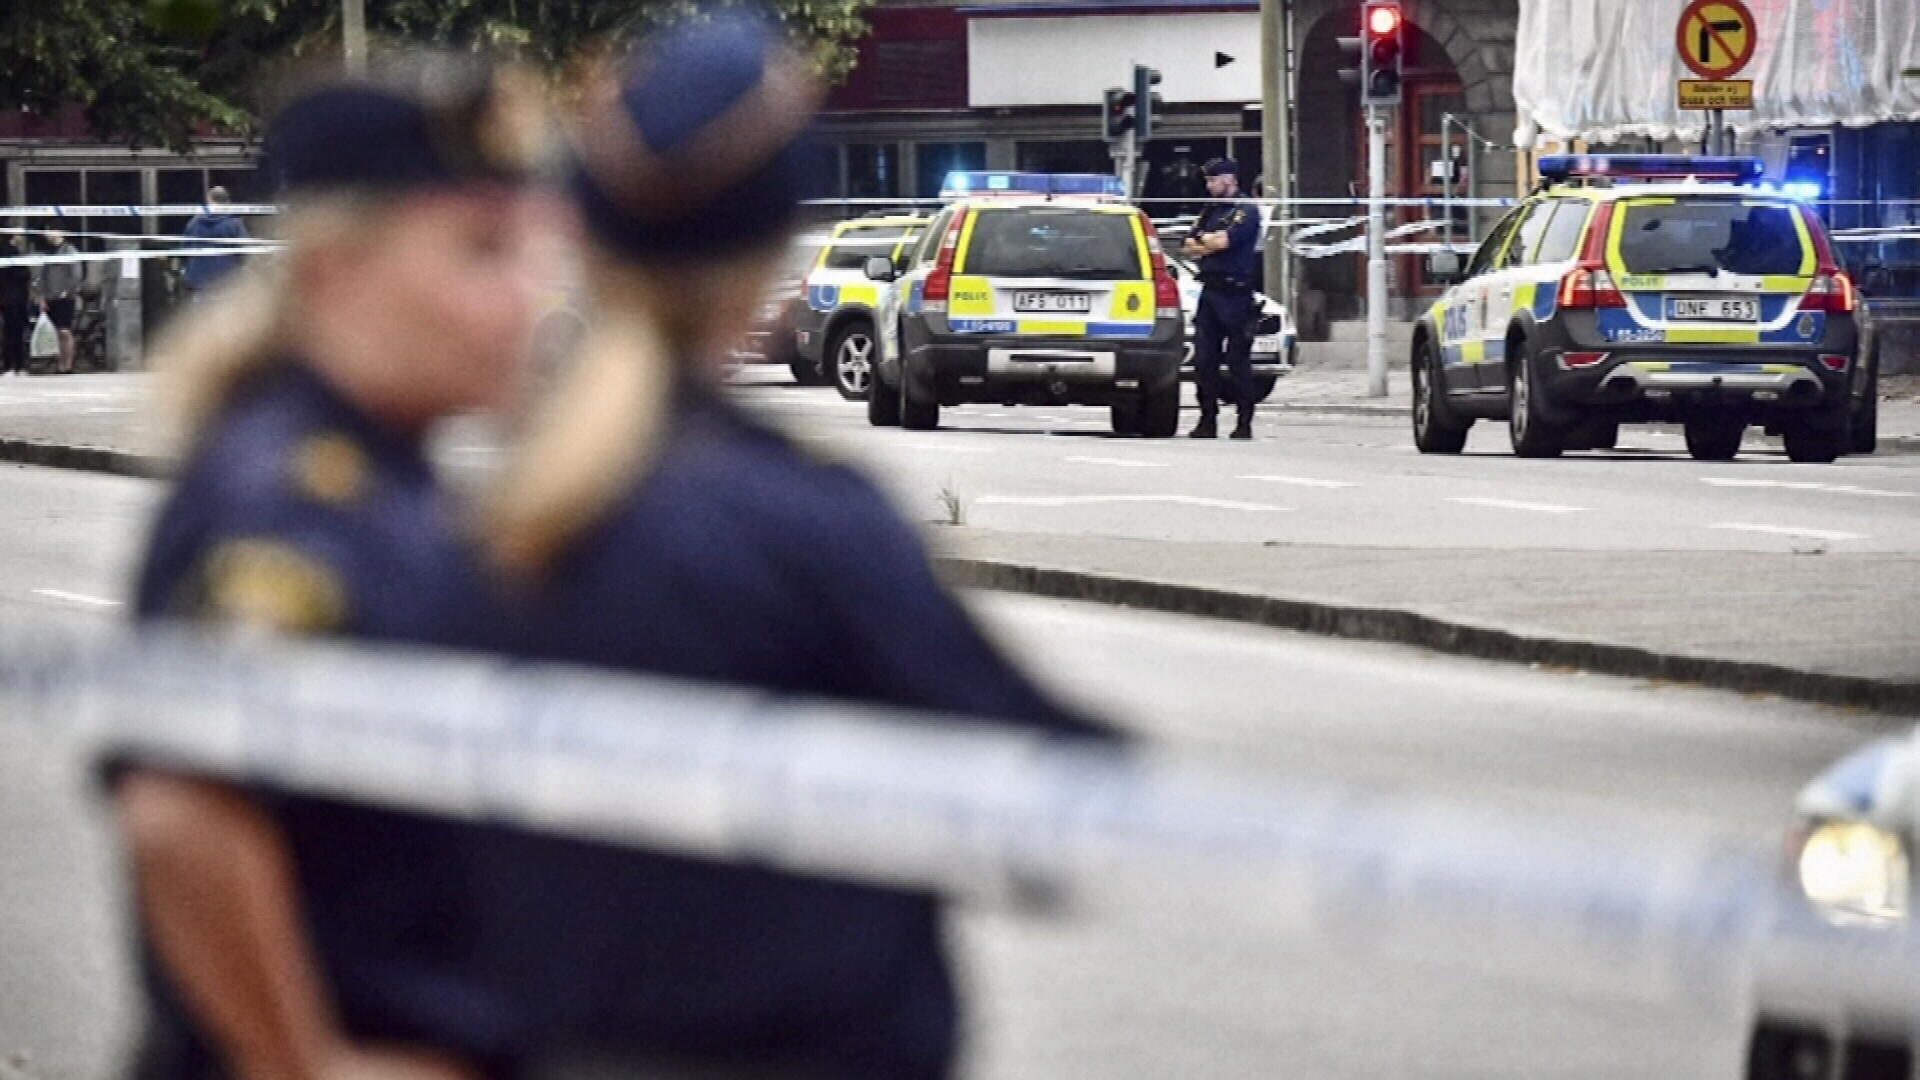 At least five injured in shooting in Sweden